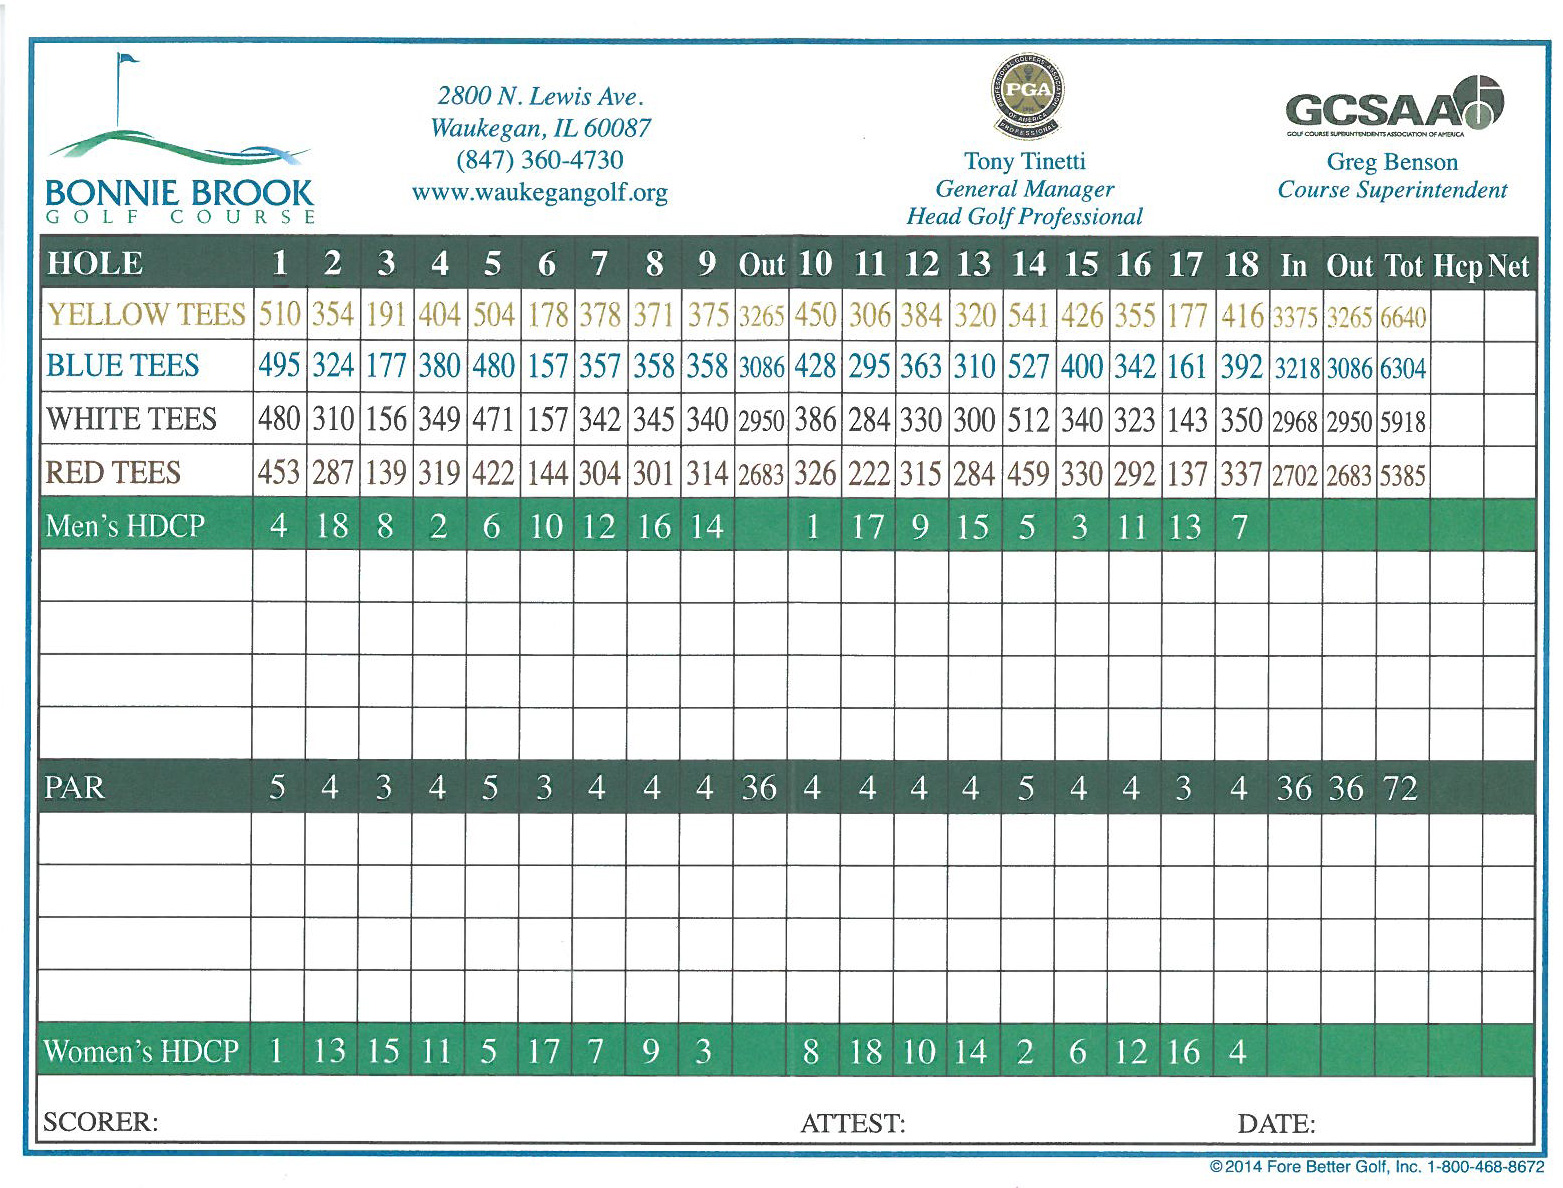 Bonnie Brook Golf Scorecard